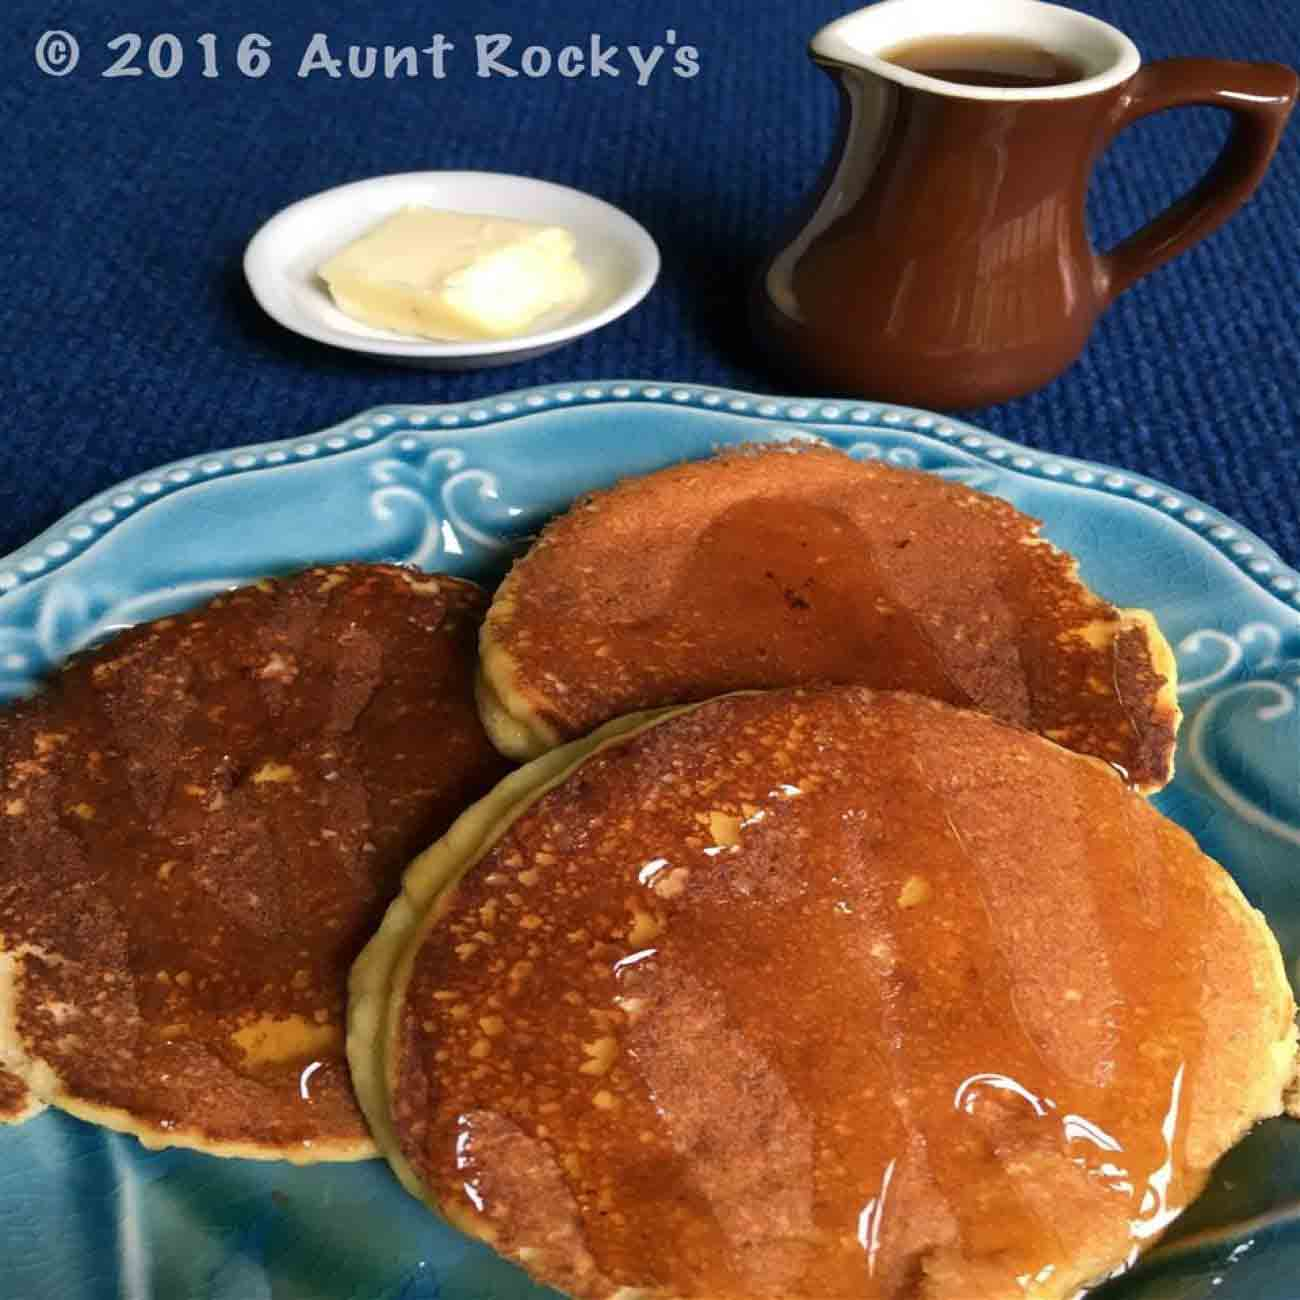 Aunt Rocky's Fluffy LCHF Pancakes (Low Carb, Grain Free, Gluten Free, Low Glycemic) Recipe